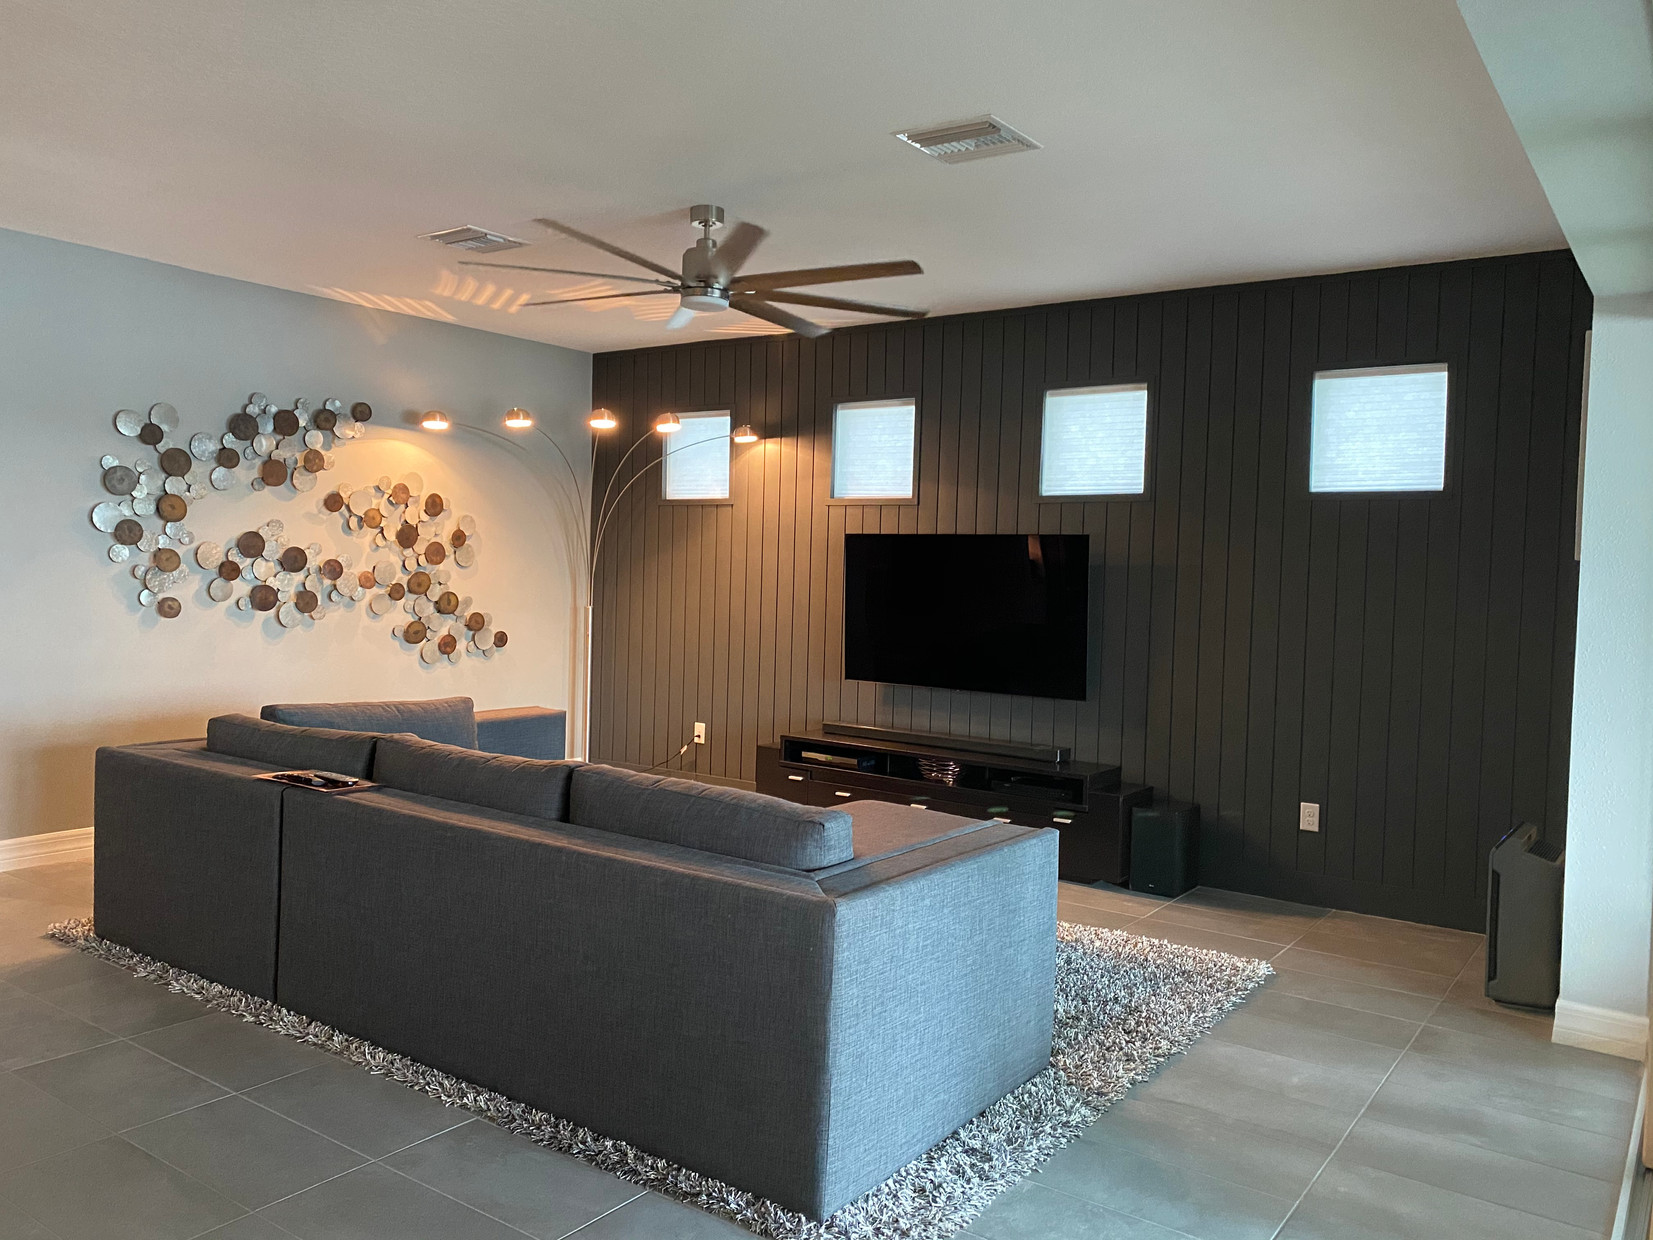 Modern + Minimalist Living Room Personalized with Custom Metal Wall Collage + Veritical Shiplap Wall